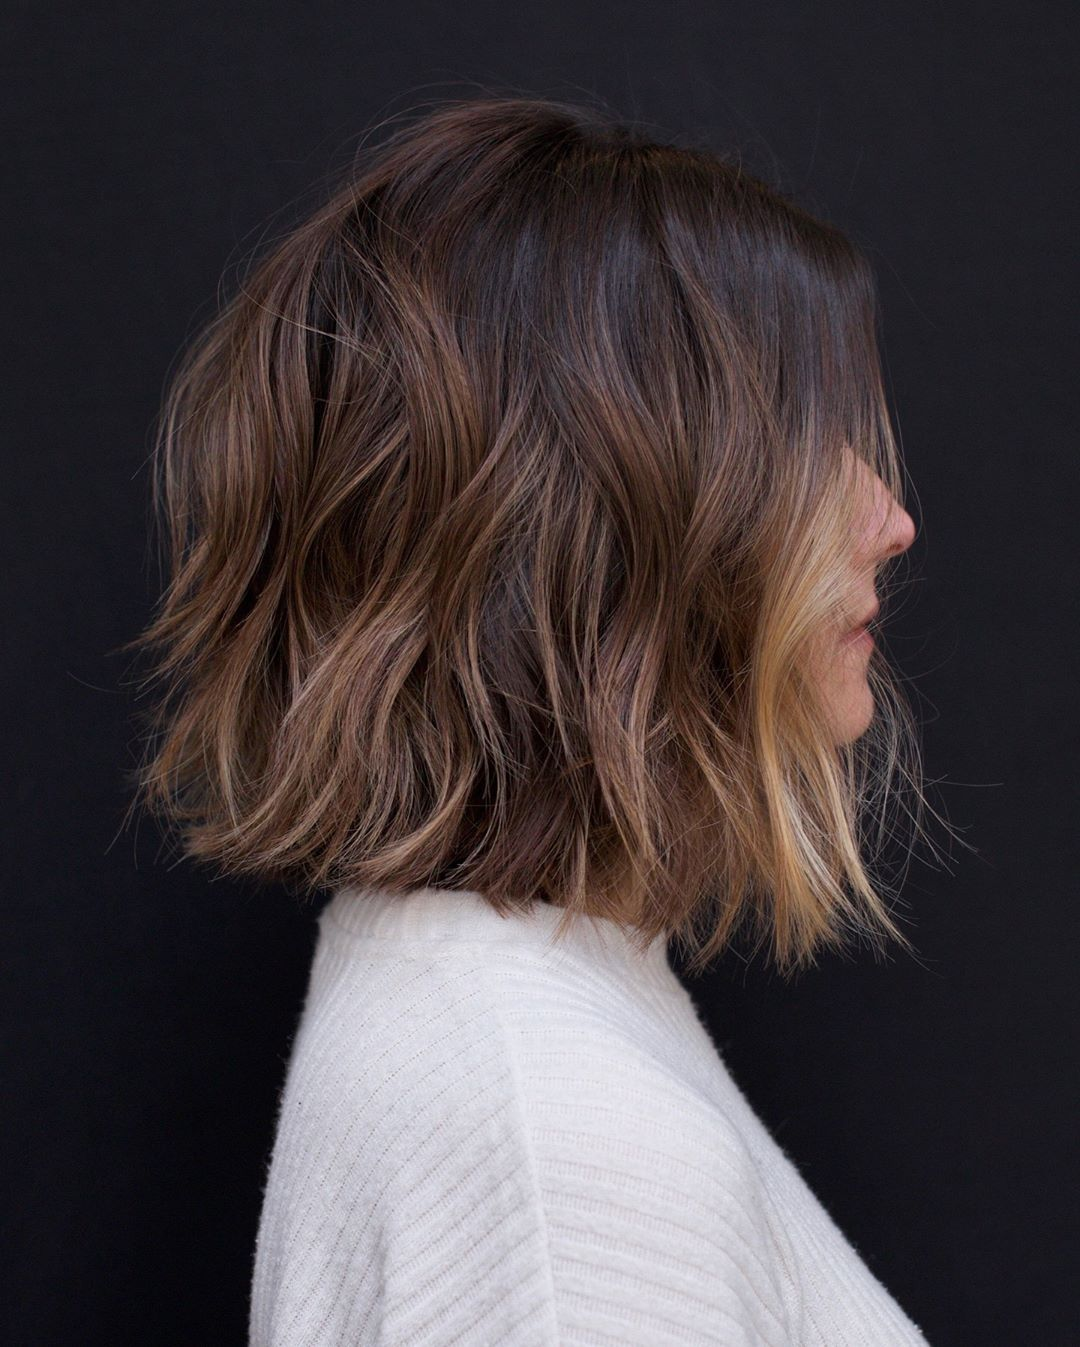 10 Easy Wavy Bob Hairstyles with Balayage - 2021 F